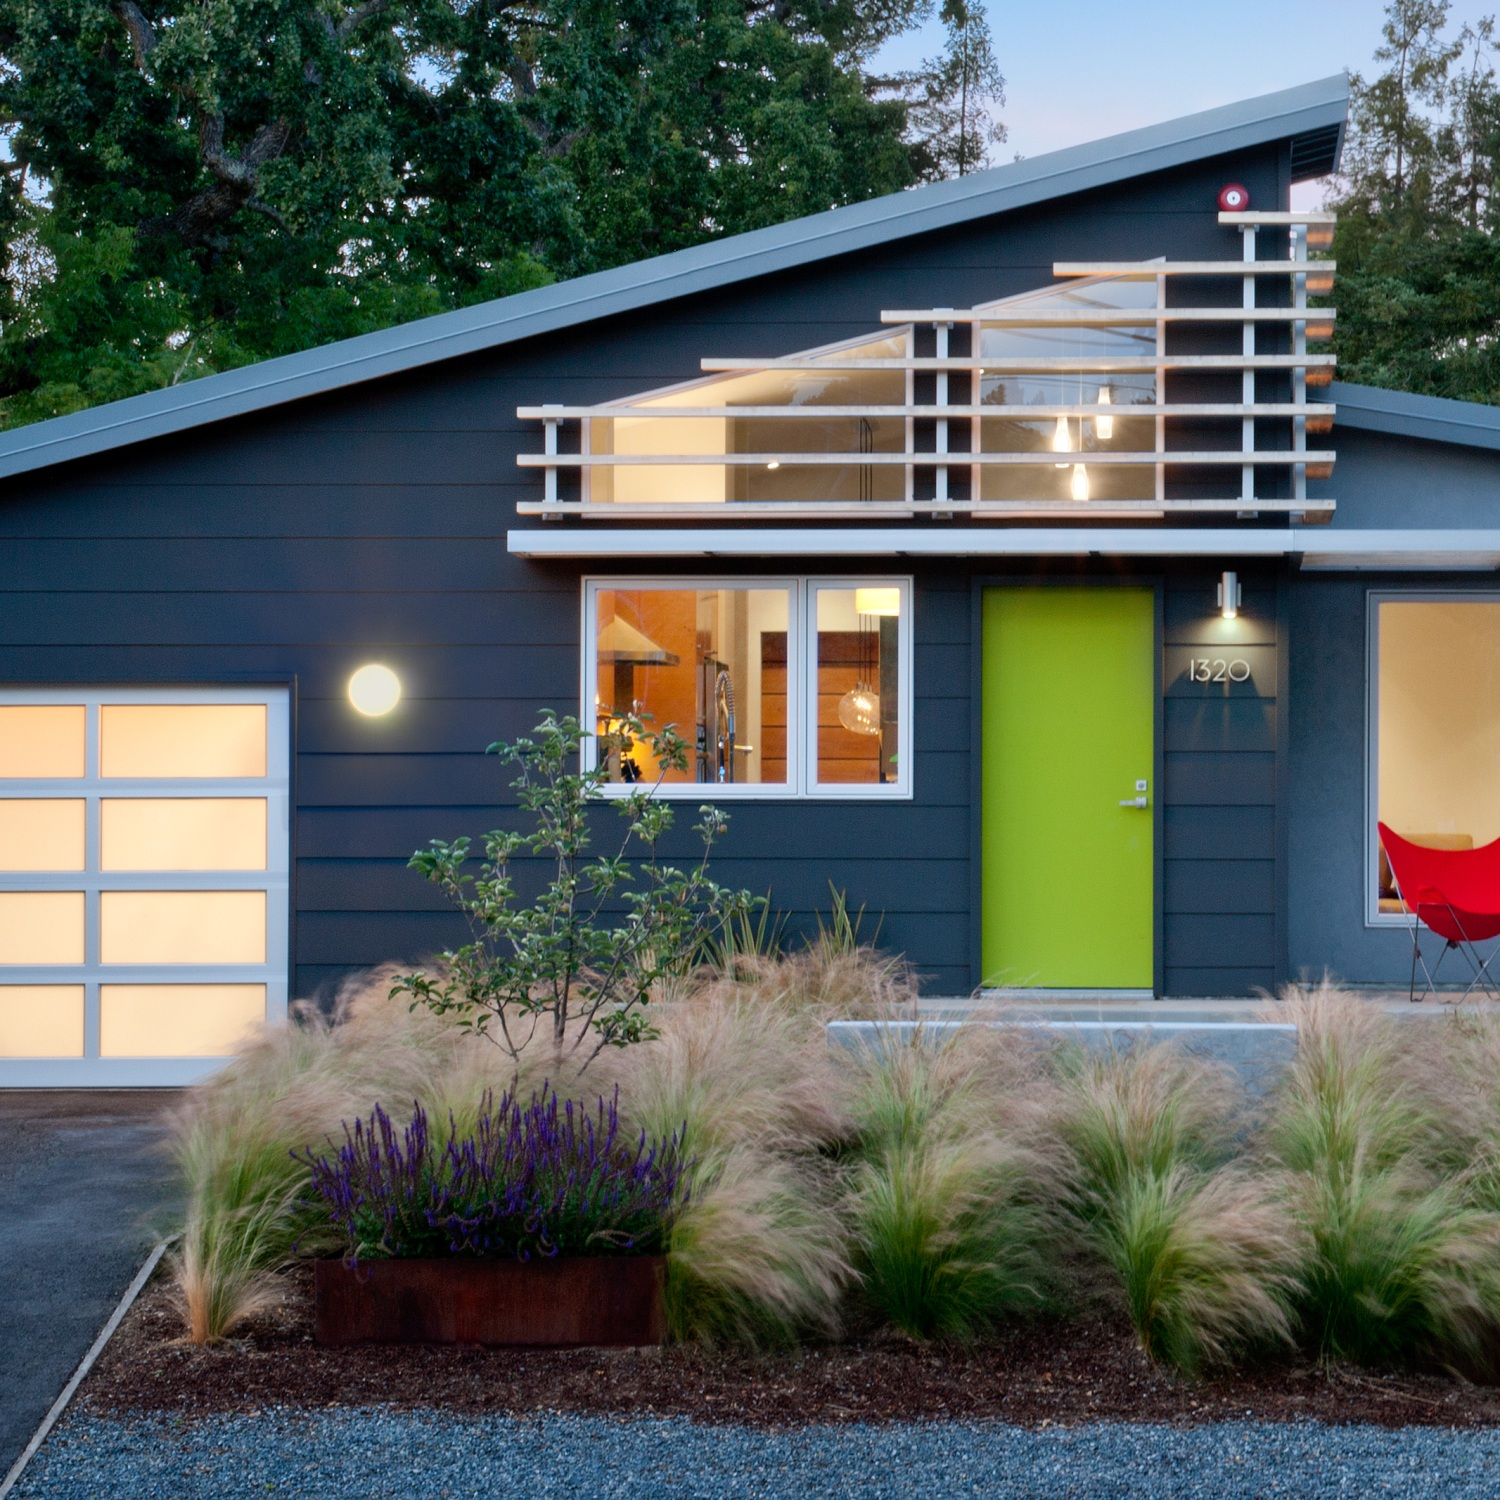 Home with well-designed exterior lighting